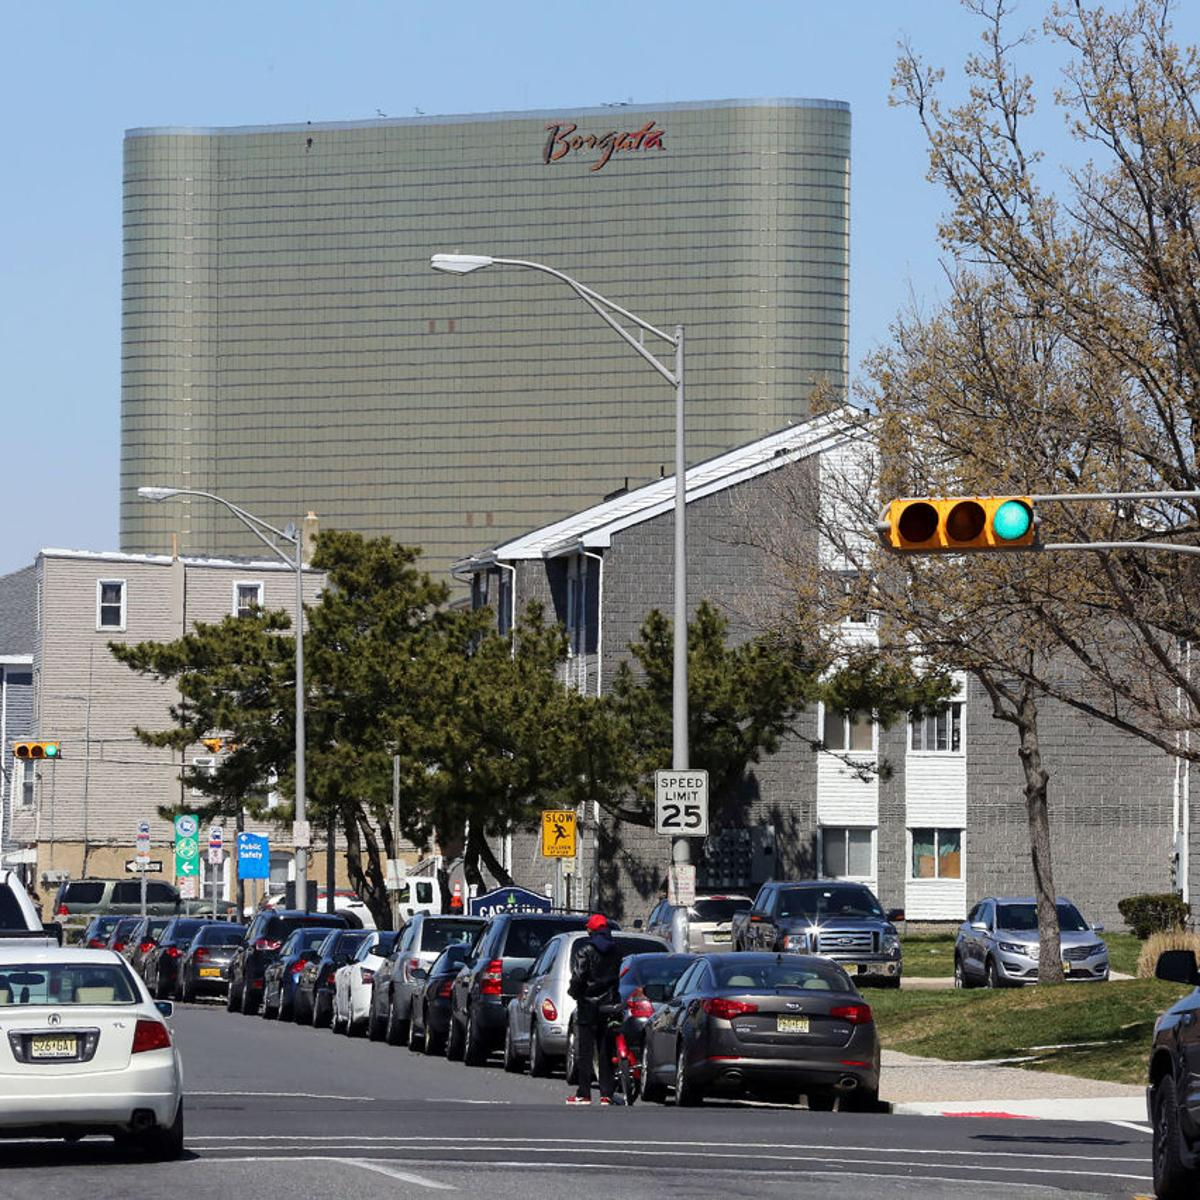 Boyd's Borgata stake to be sold to MGM for $900 million